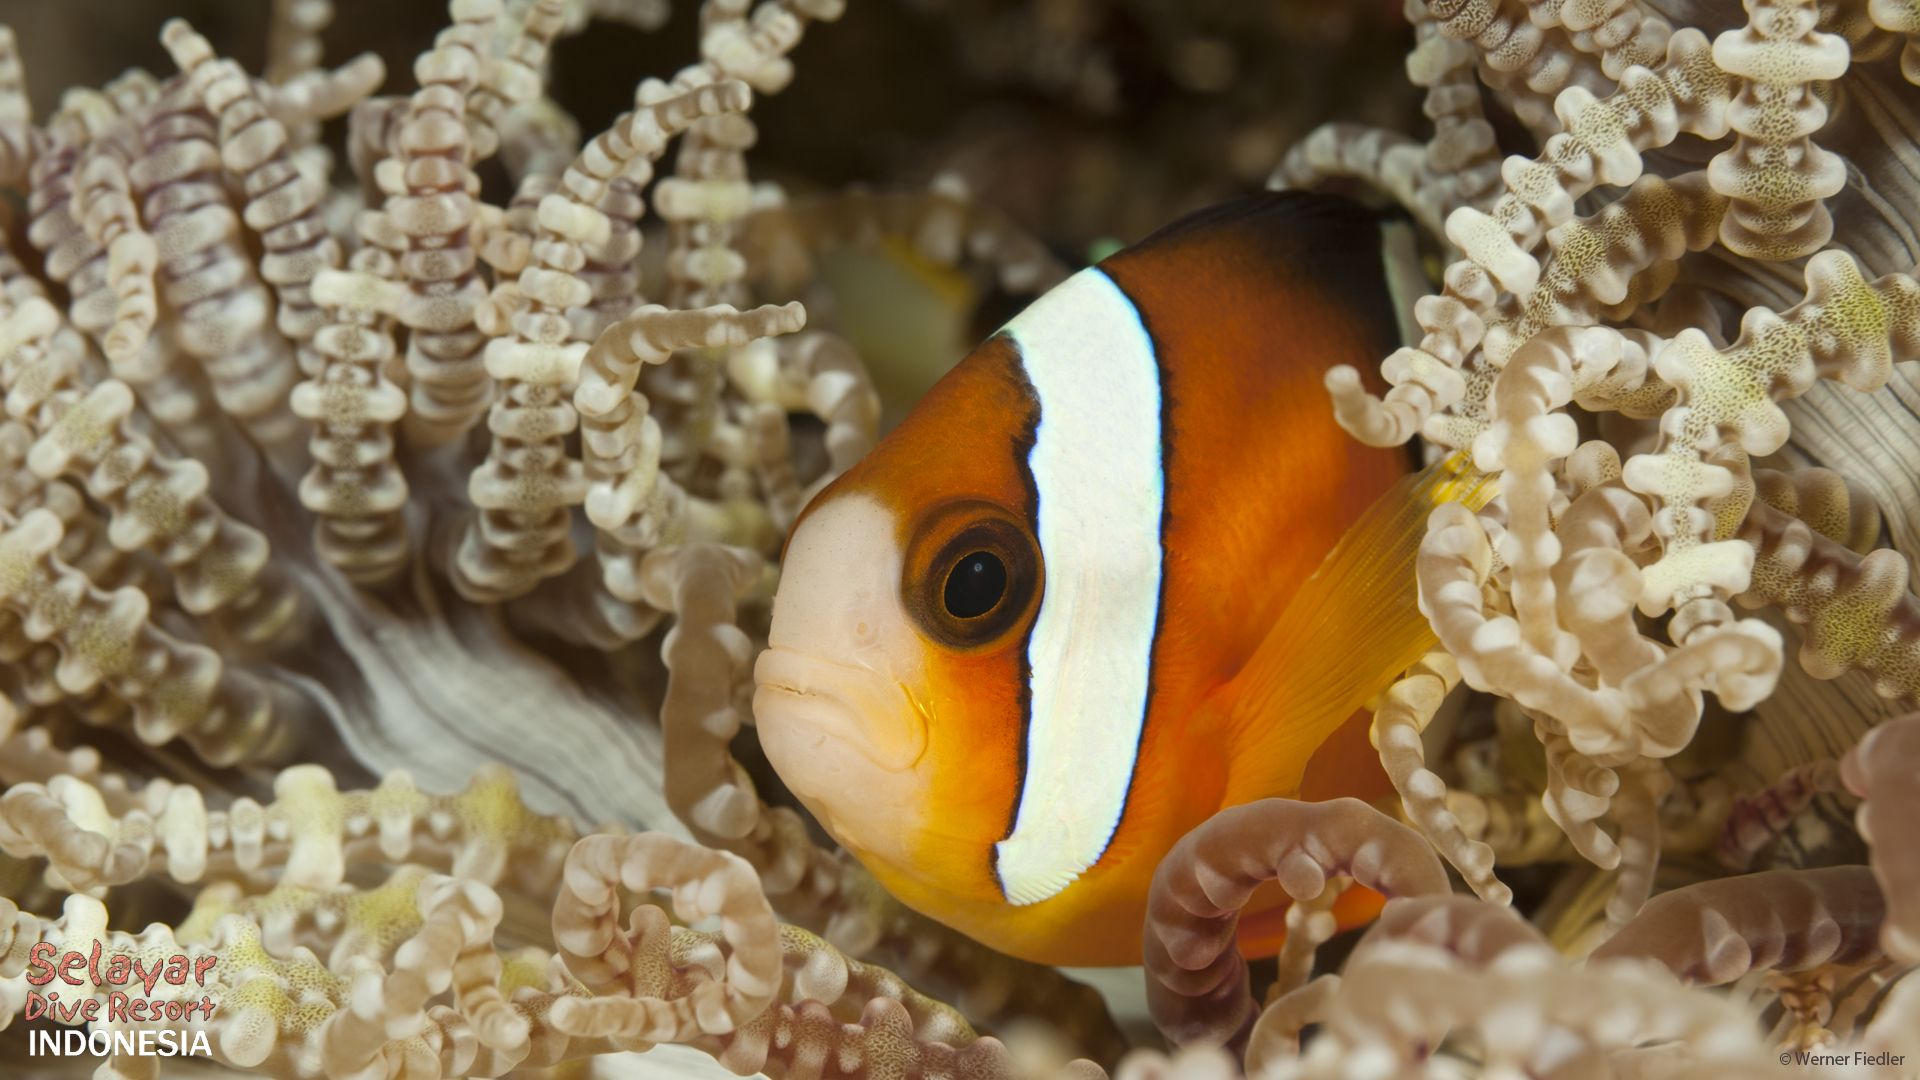 padi dive resort Indonesia South Sulawesi clownfish